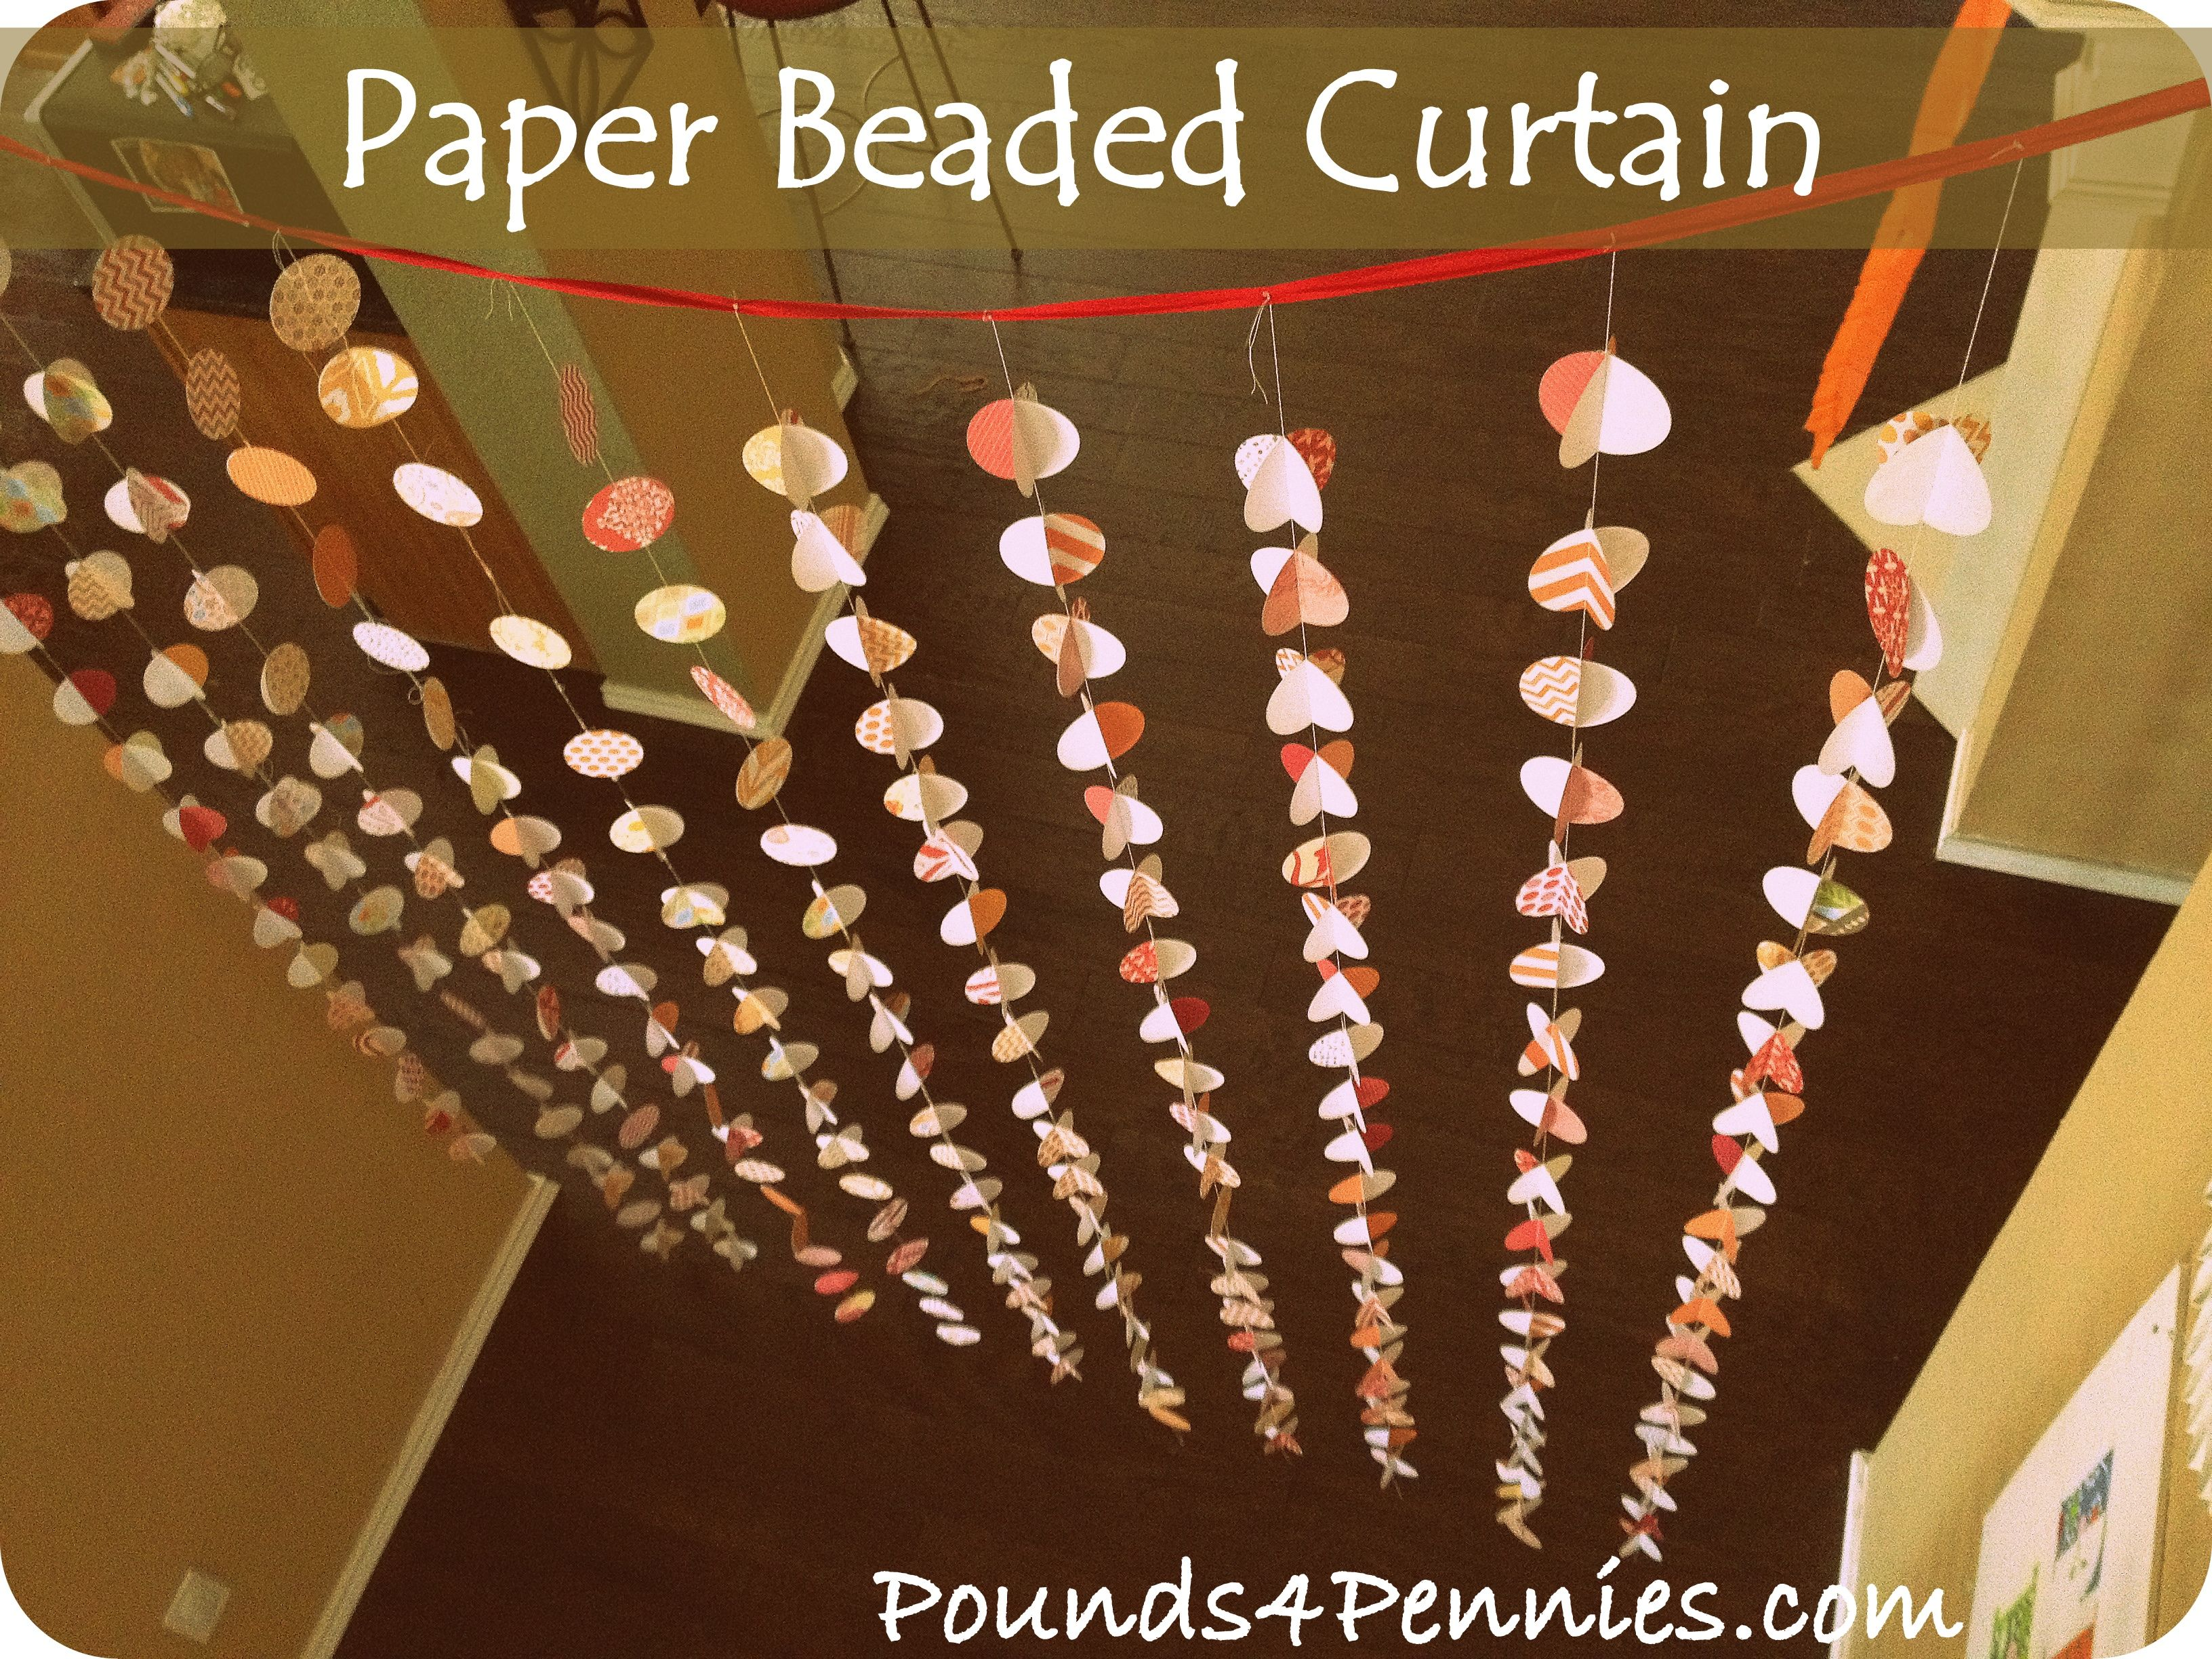 Awesome Tween Party Ideas - Paper Beaded Curtain | Beaded ...